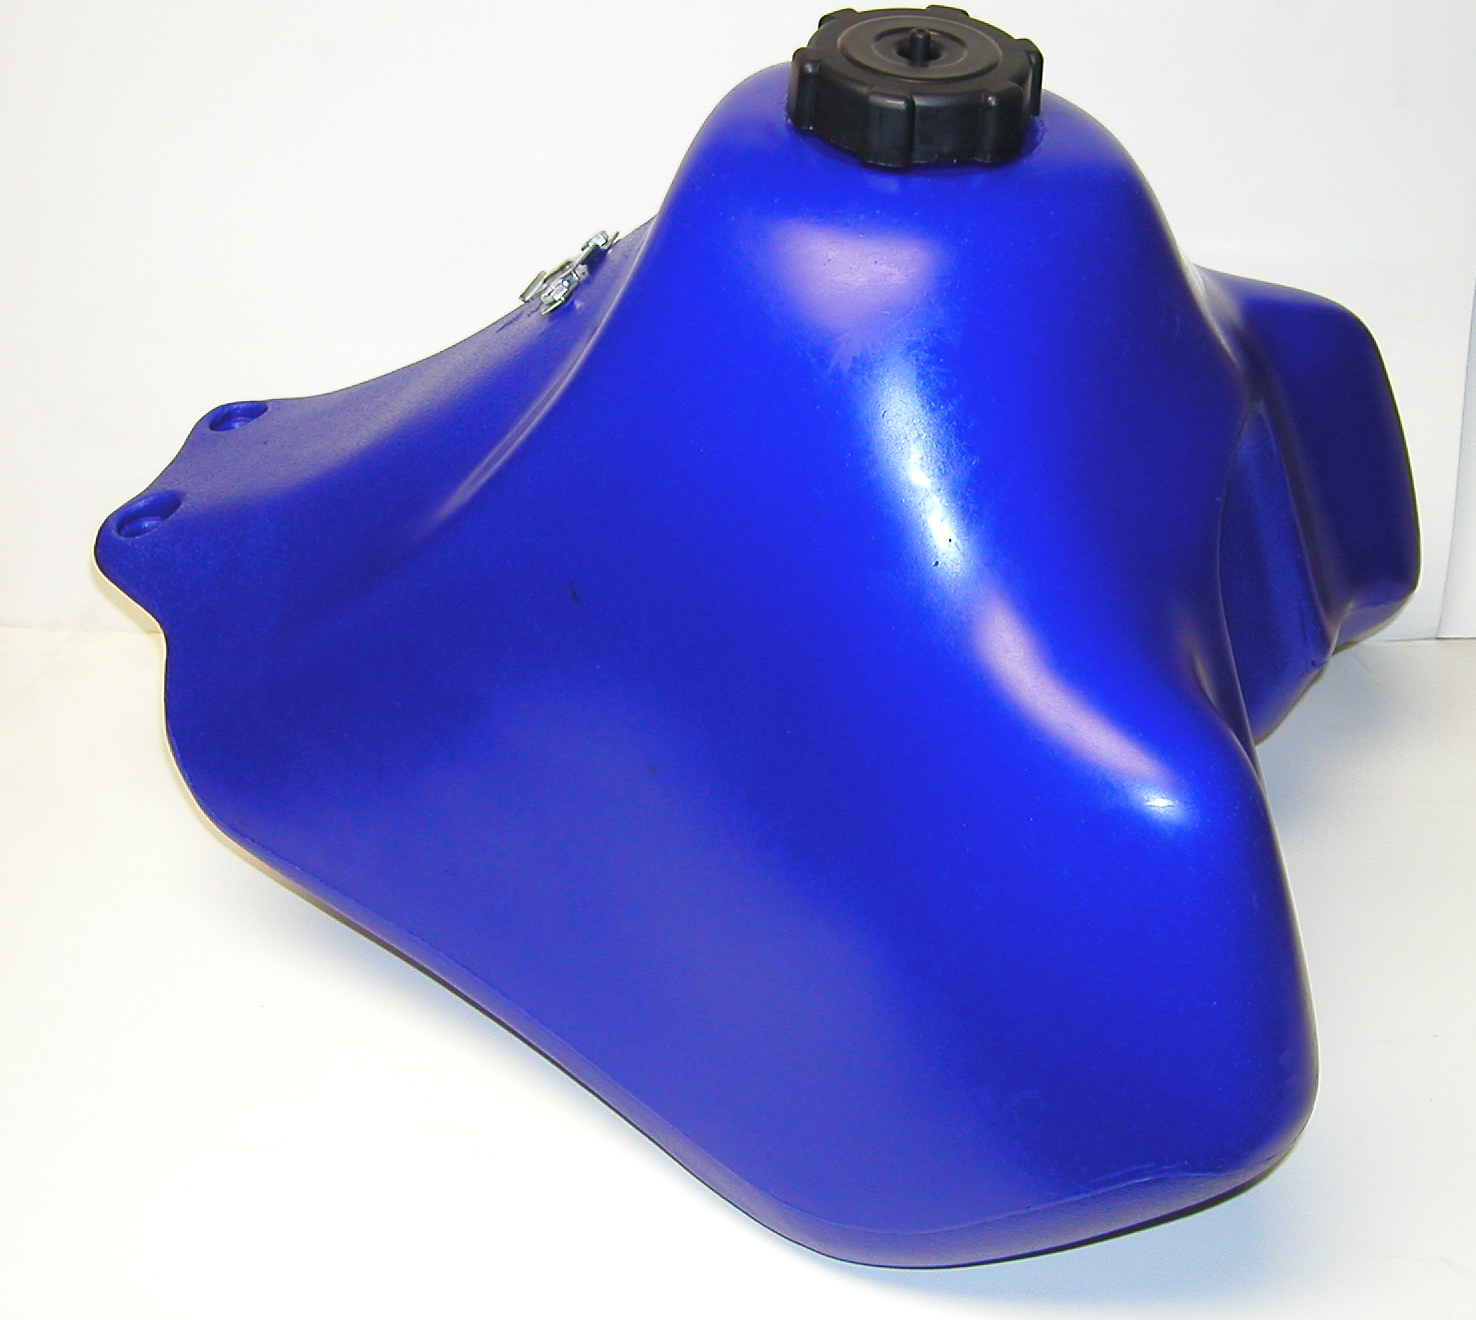 DR 650 SUZUKI  4.9 GALLON FUEL TANK, BLUE